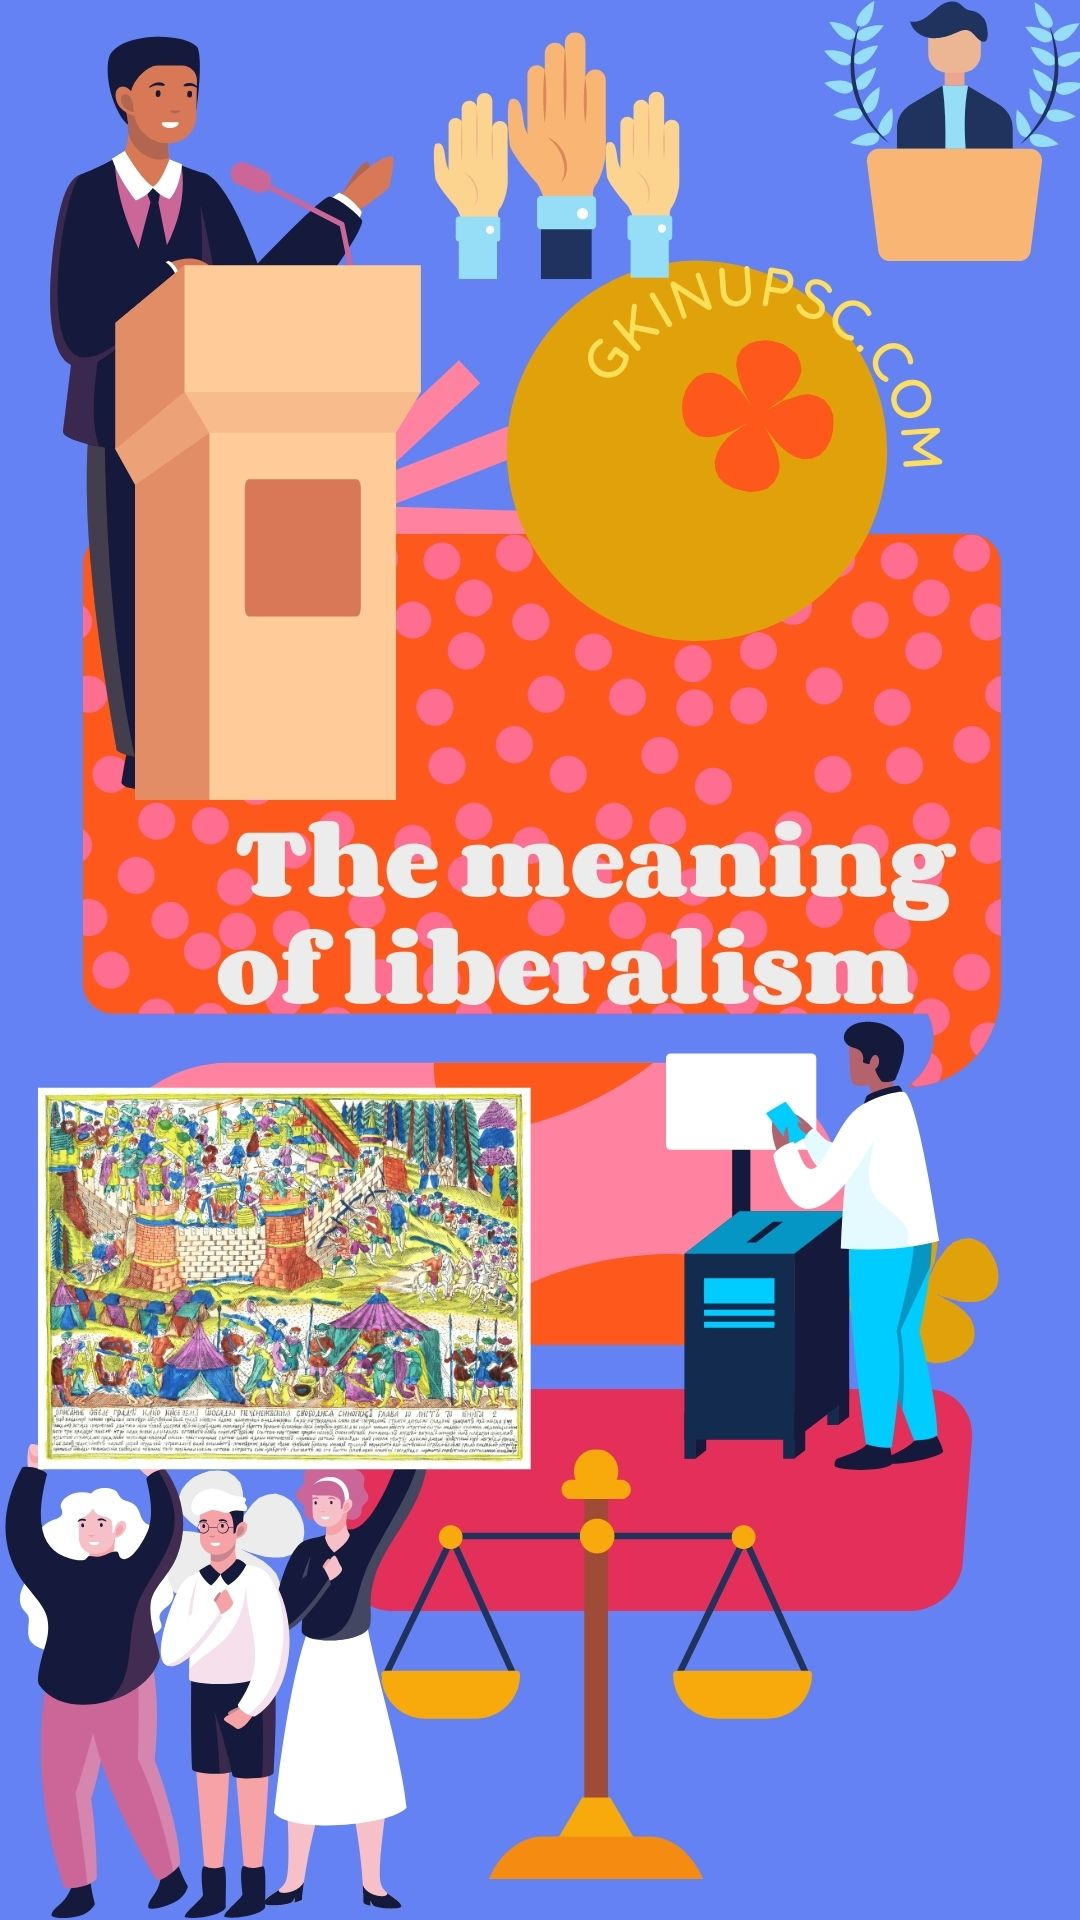 The meaning of liberalism